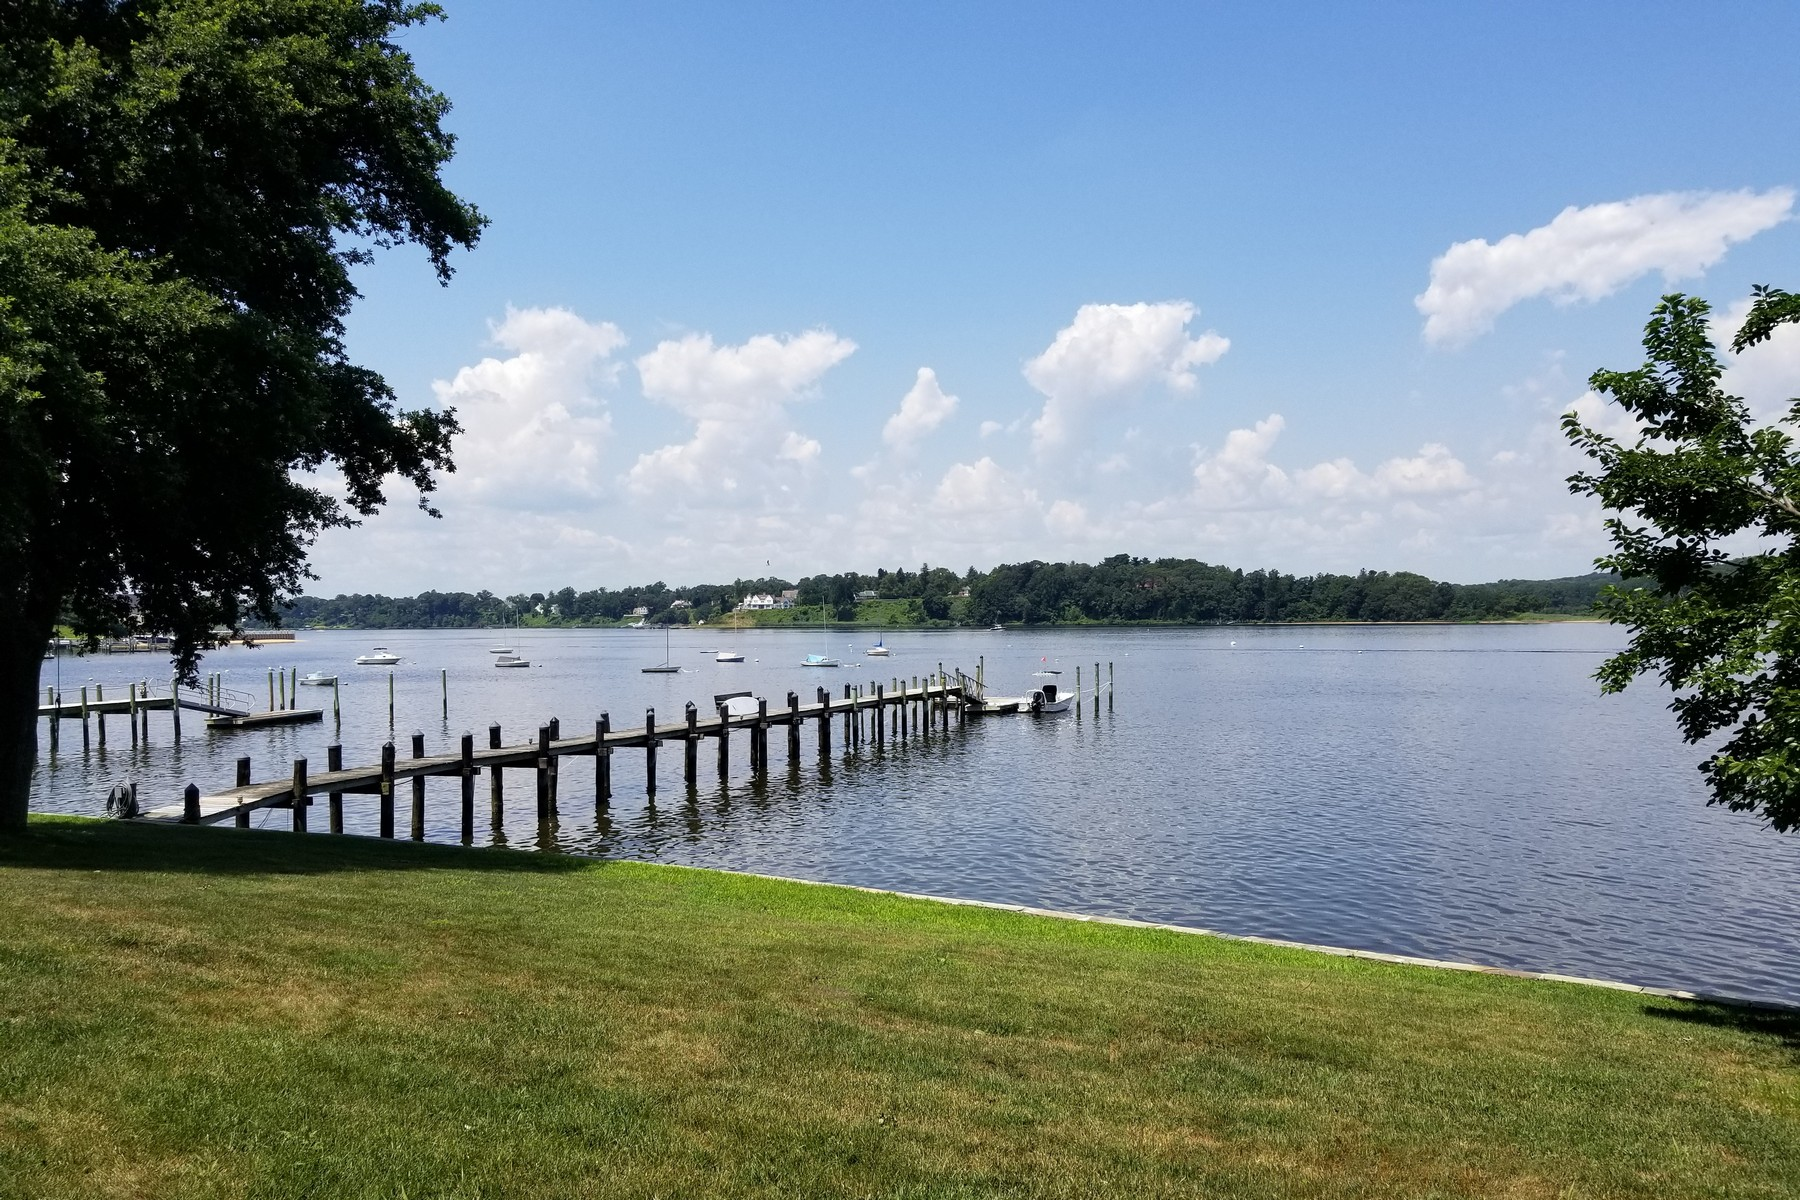 Single Family Homes for Sale at Waterfront Bliss 81 Riverlawn Drive Fair Haven, New Jersey 07704 United States